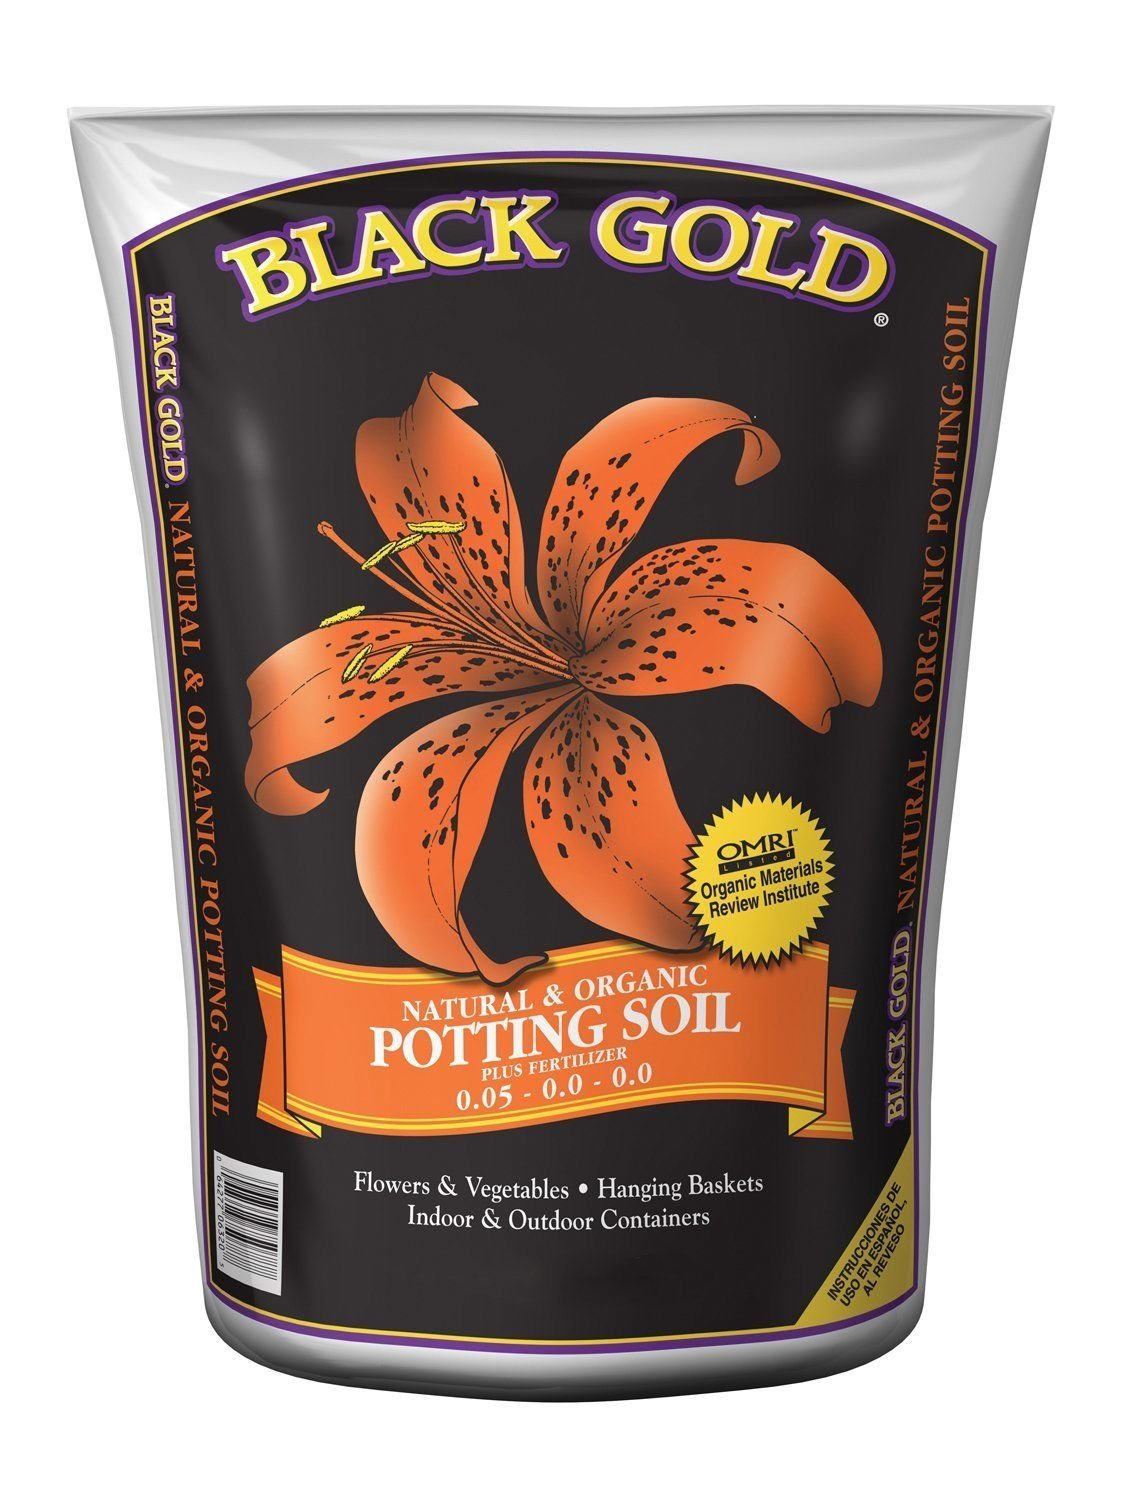 organic potting soil size 8 quart black gold natures sungro 1302040 8 quart 29447